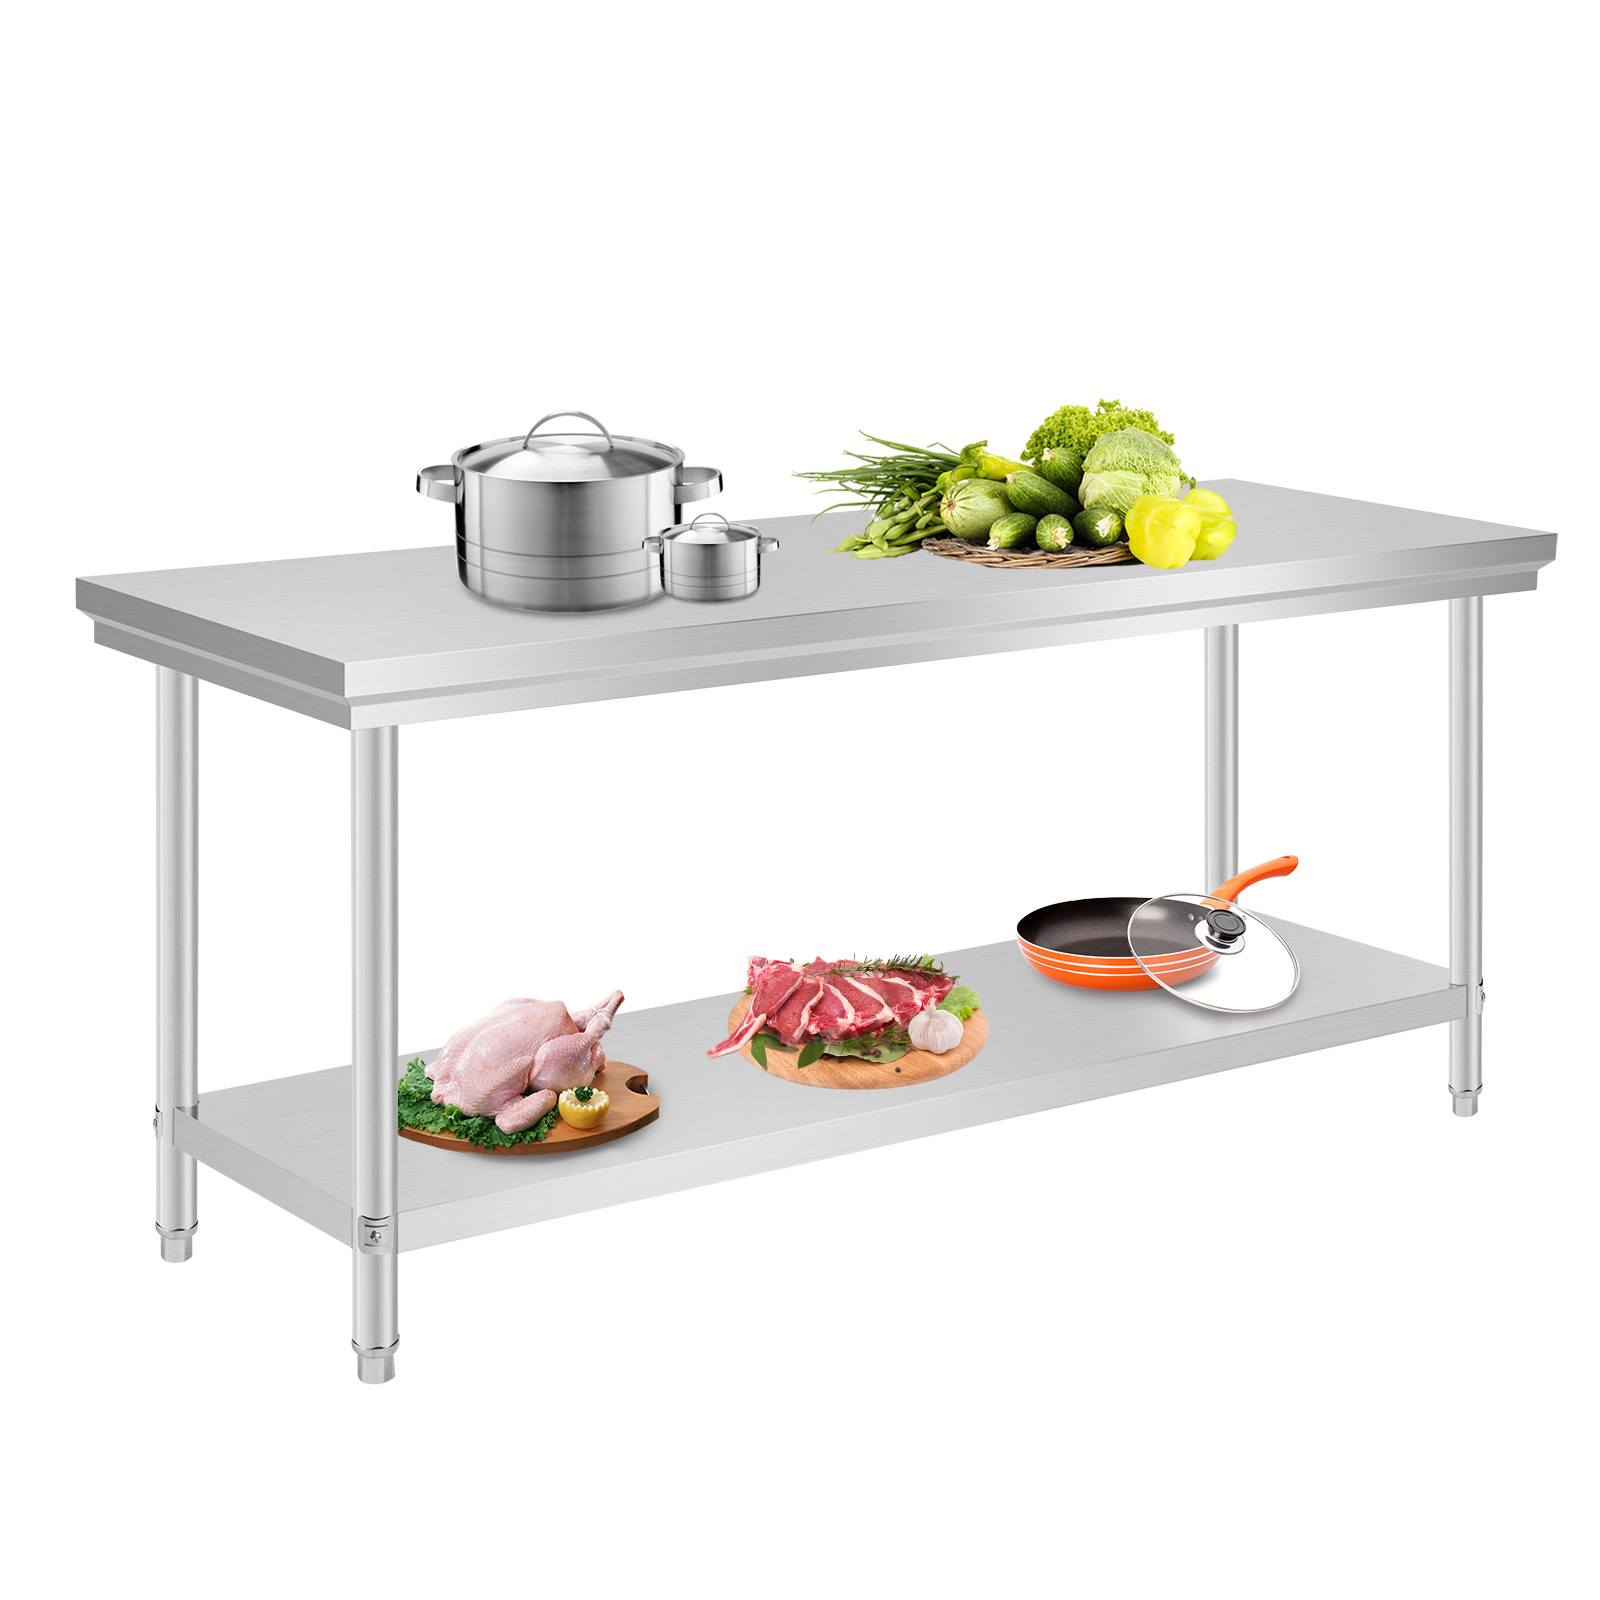 CATERING TABLE COMMERCIAL TABLE STAINLESS STEEL KITCHEN